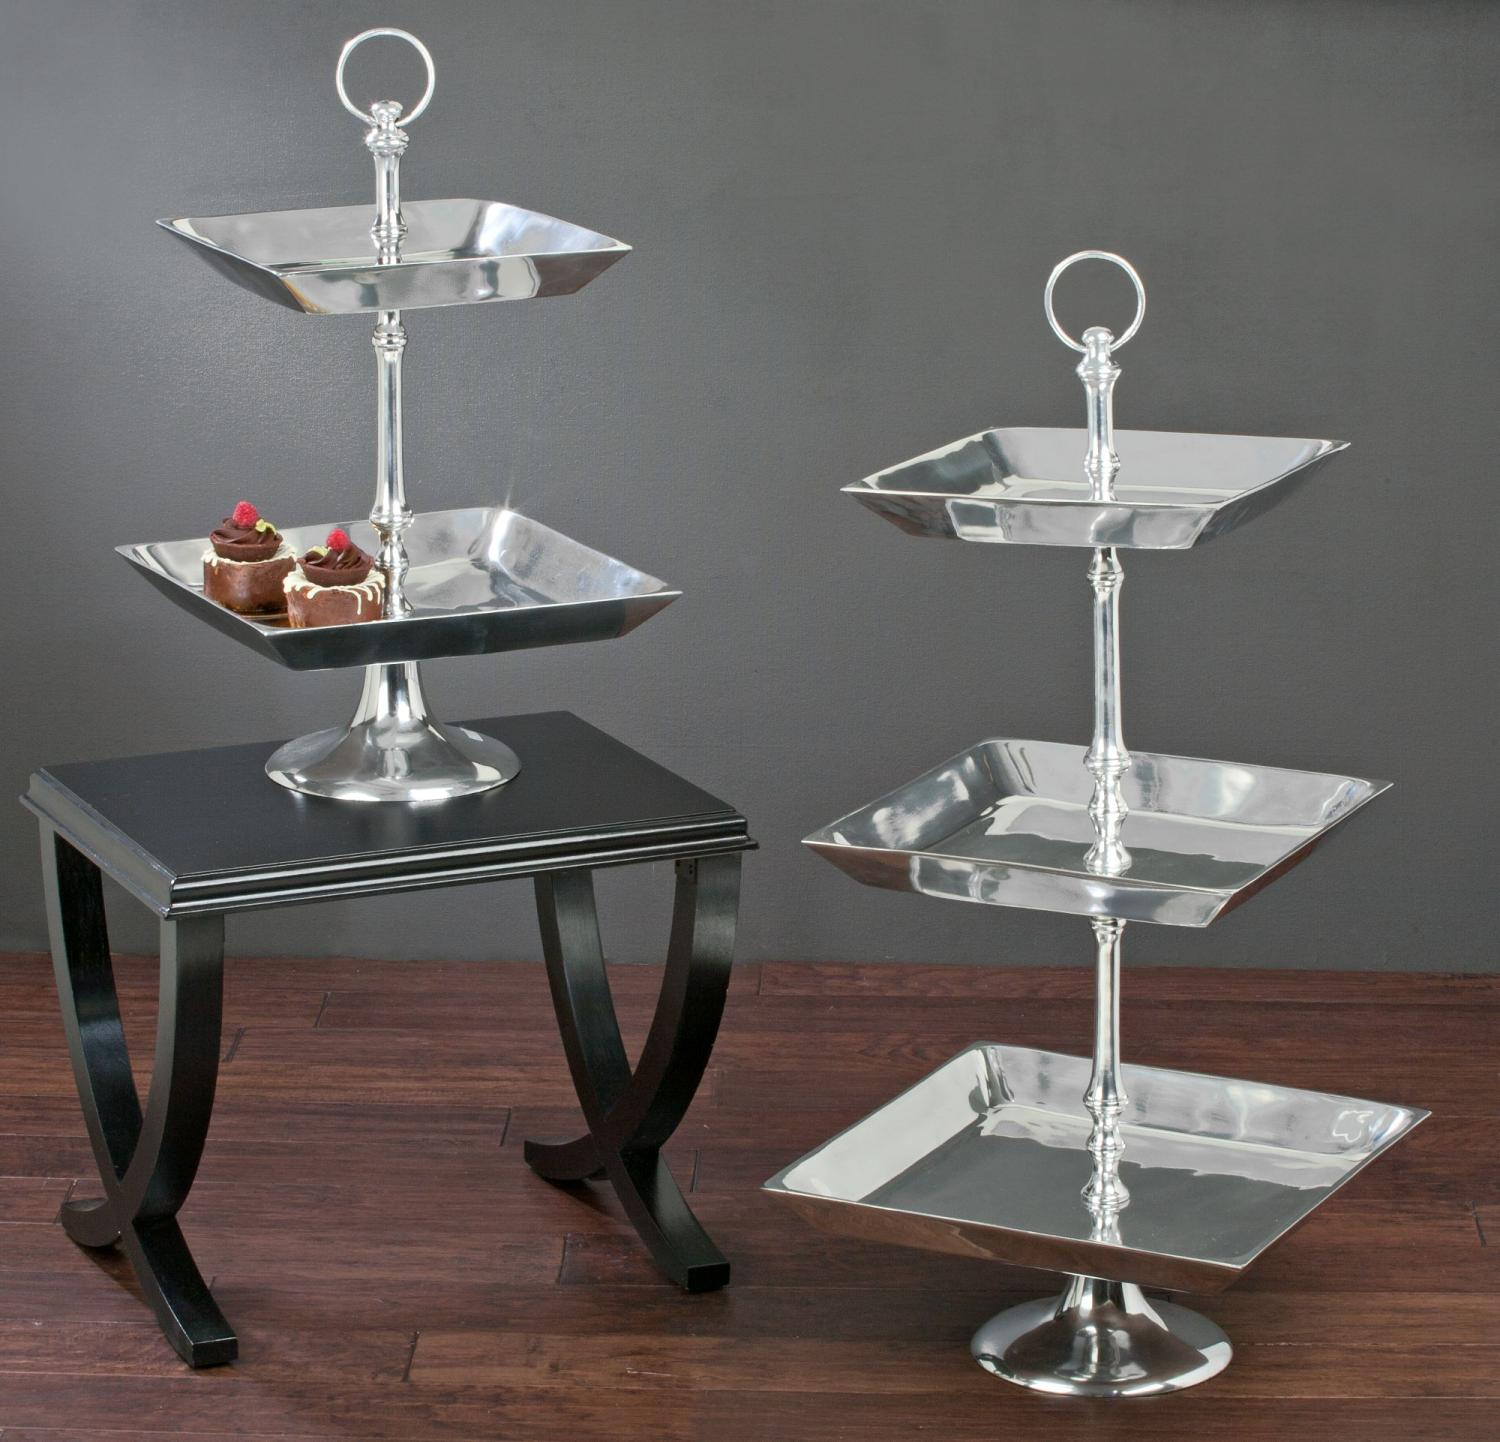 Large Tiered Aluminum Tray Stands & Large Tiered Aluminum Tray Stands - Tripar International Inc.